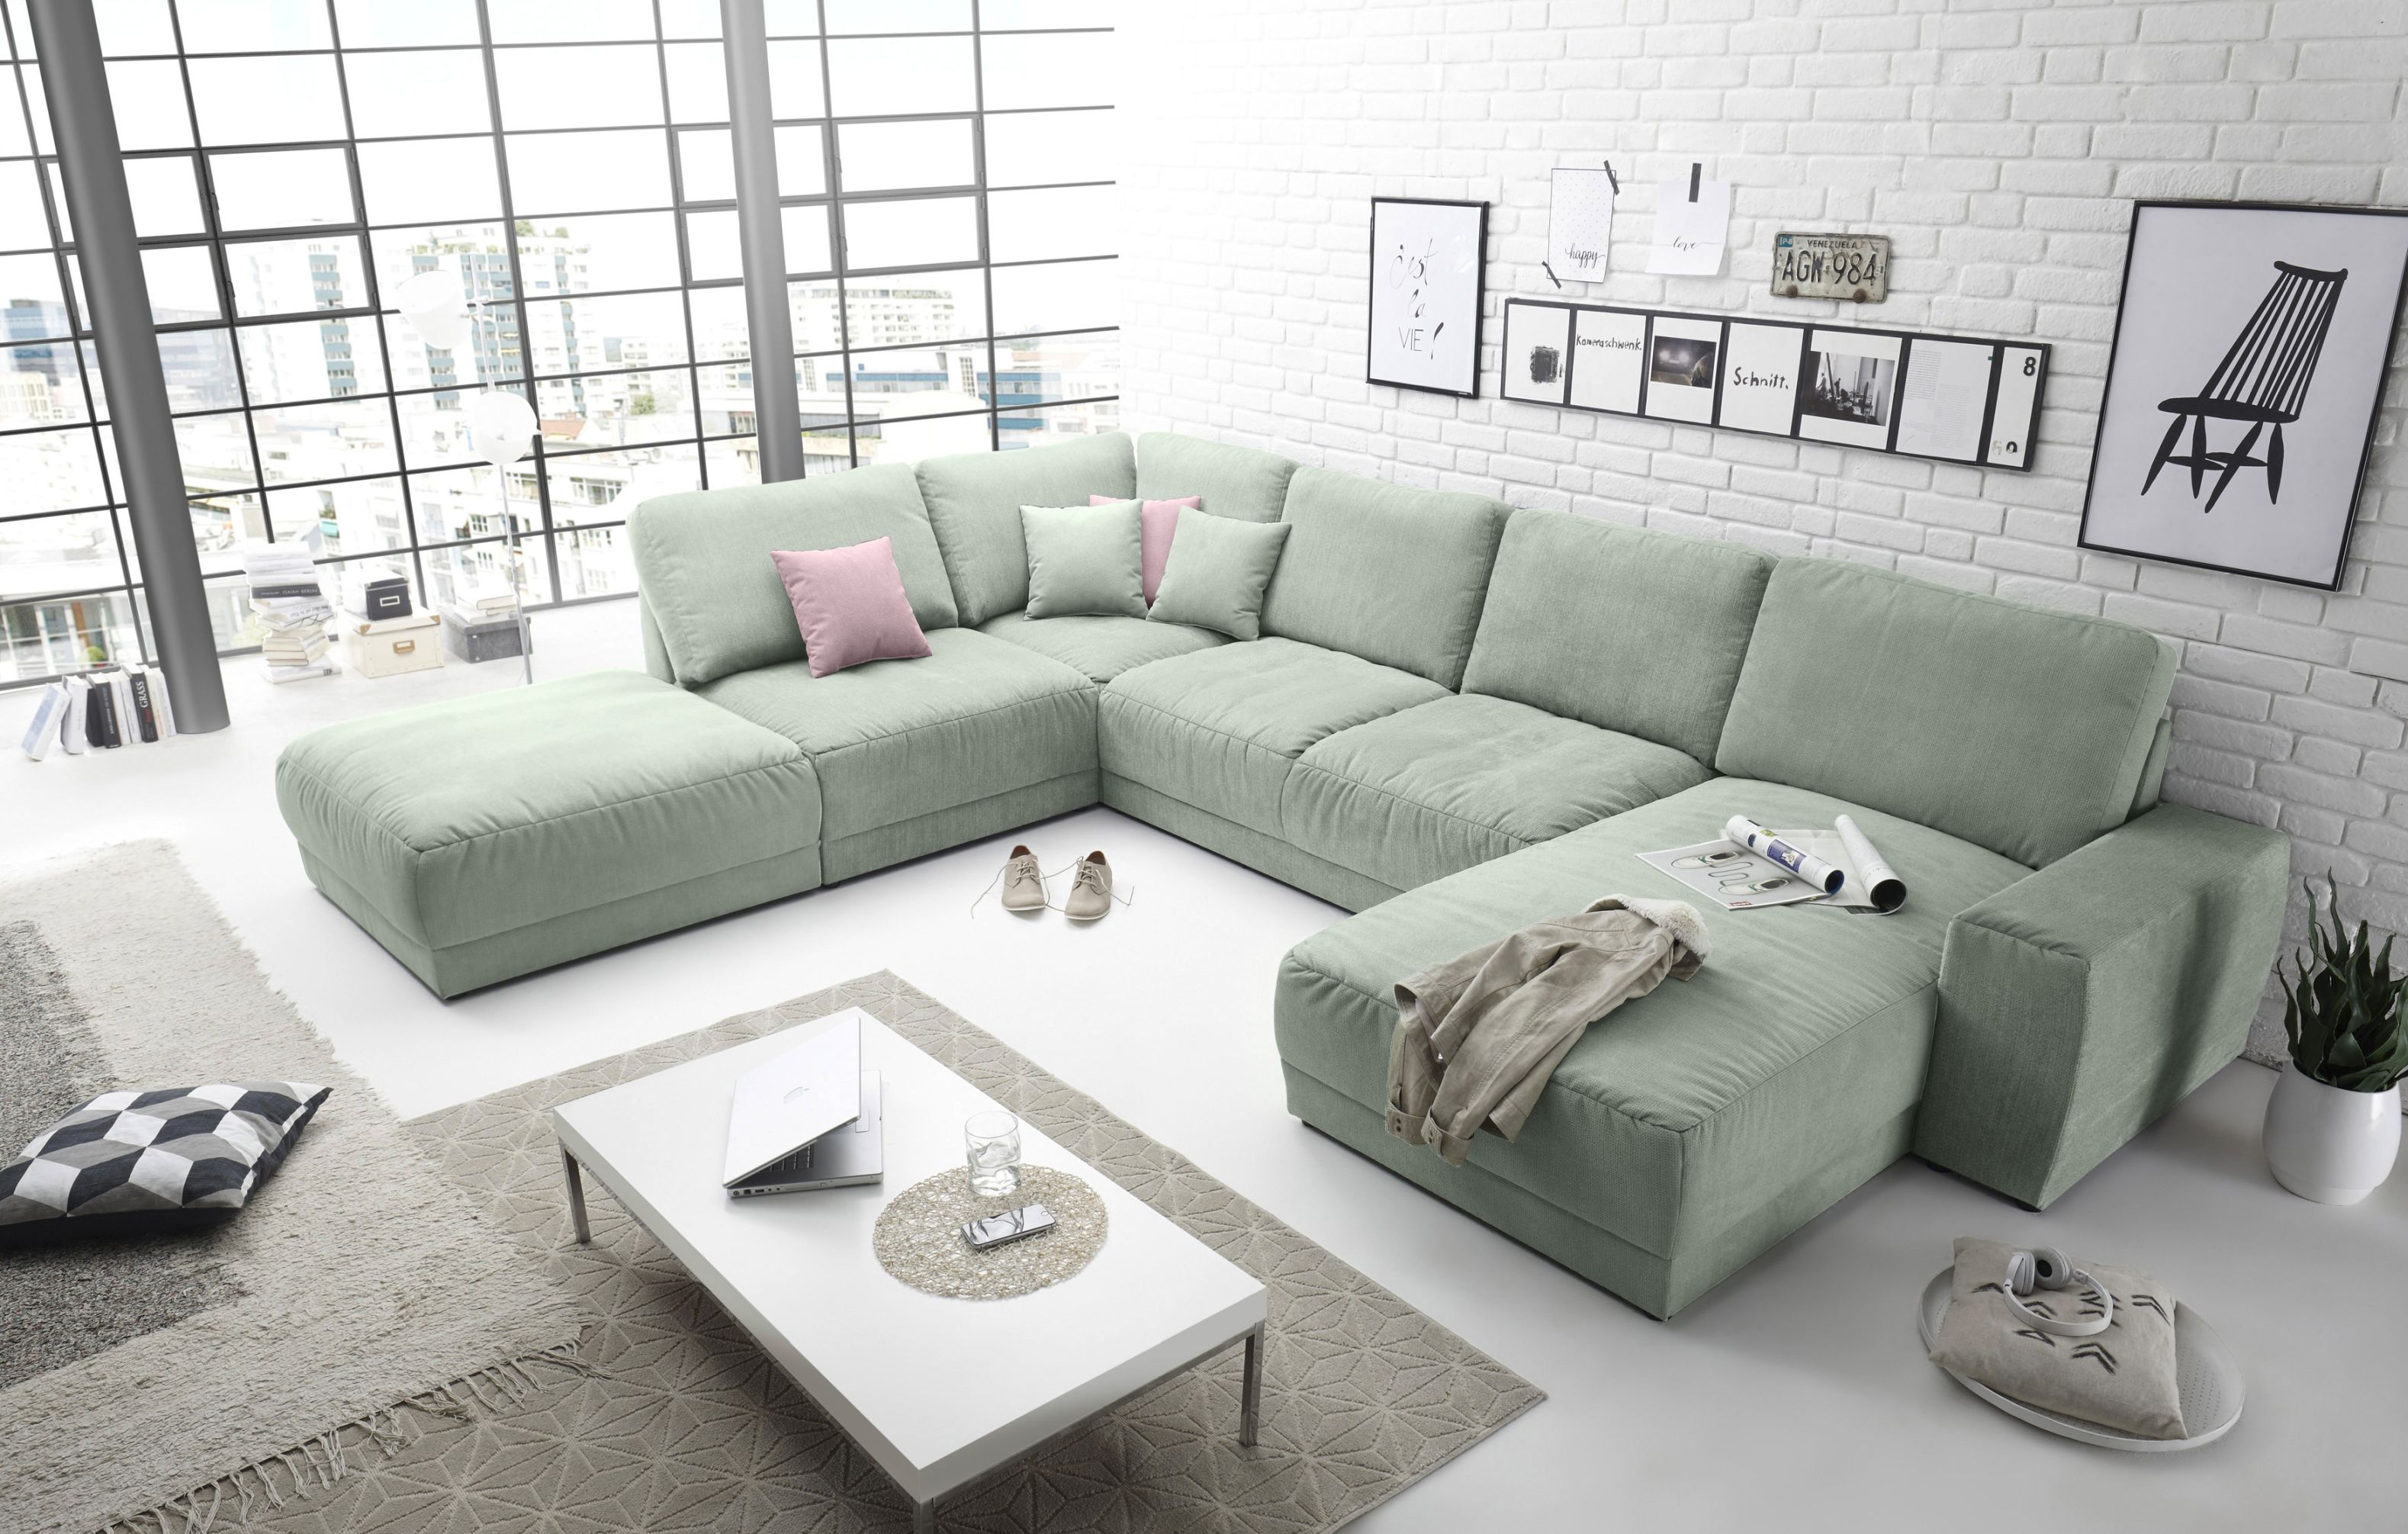 ecksofa monza 3 sofa wohnlandschaft couch u f rmig mint gr n 458 cm ebay. Black Bedroom Furniture Sets. Home Design Ideas